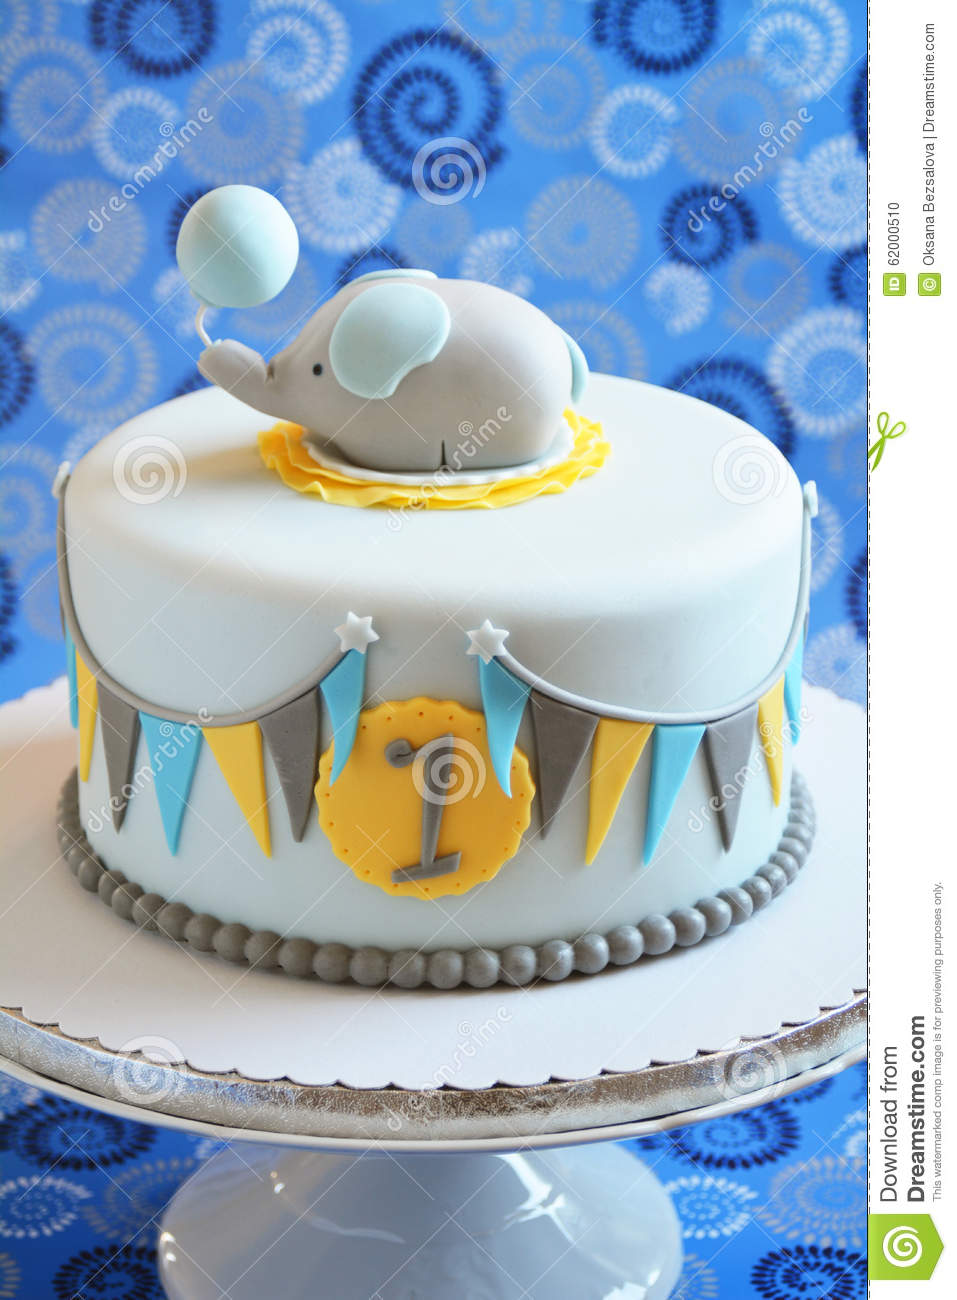 Cute Birthday Cake For A Child Stock Photo